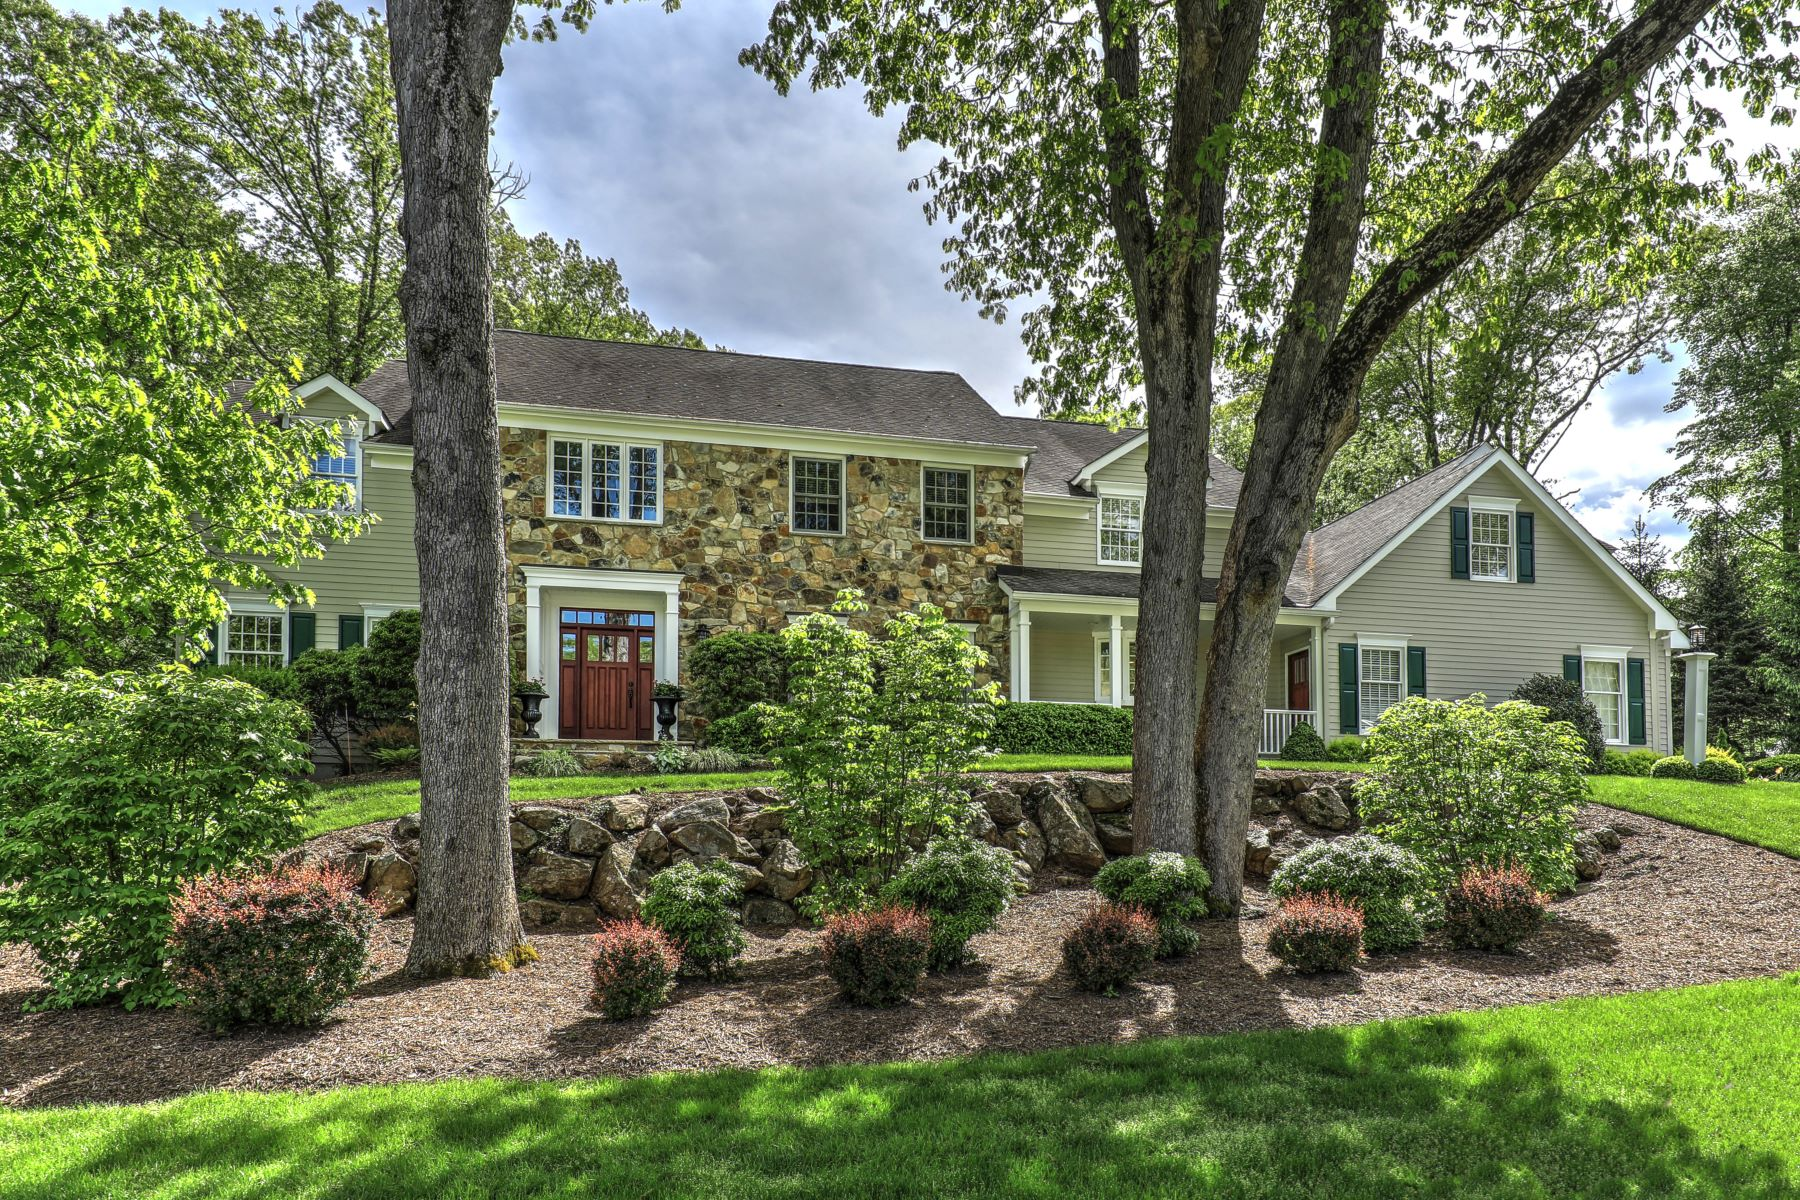 Single Family Homes for Sale at Exquisite Custom Colonial 34 Brookrace Drive Mendham, New Jersey 07945 United States